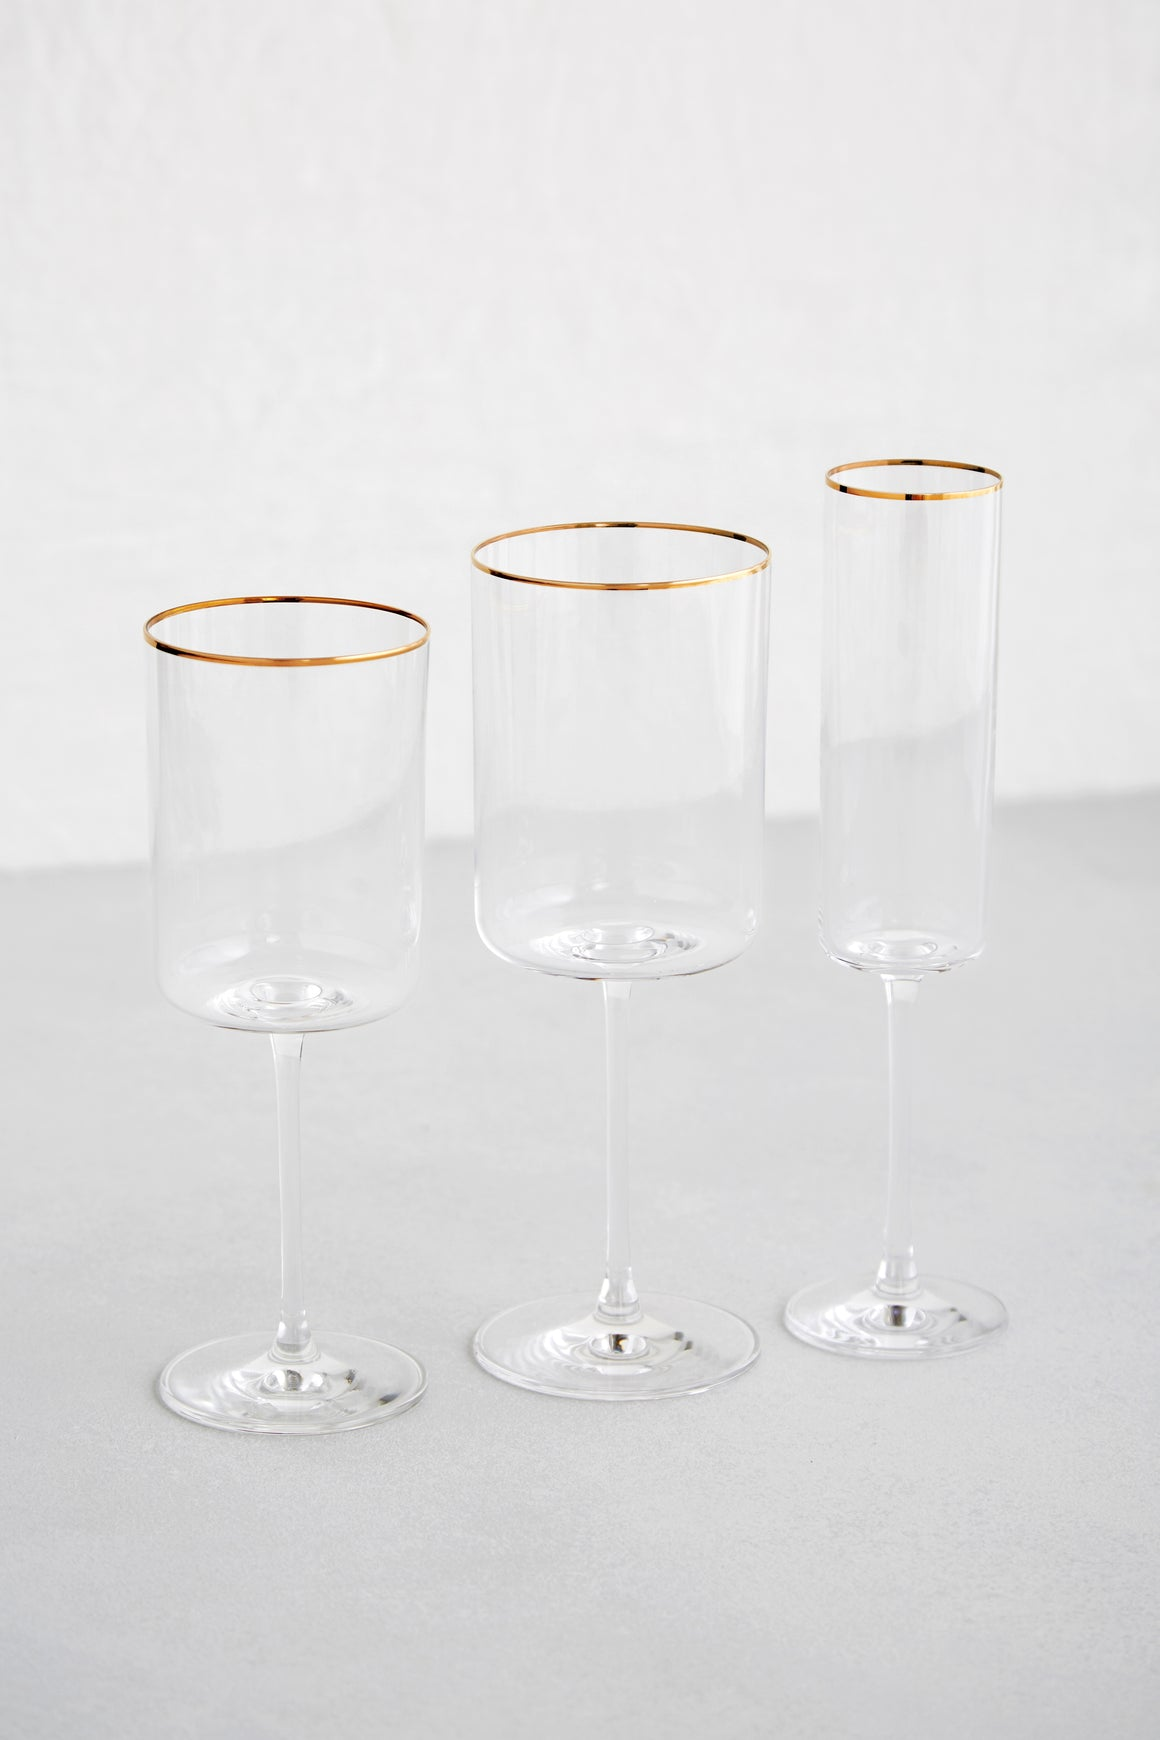 Edge Glassware, Gold Rimmed Clear